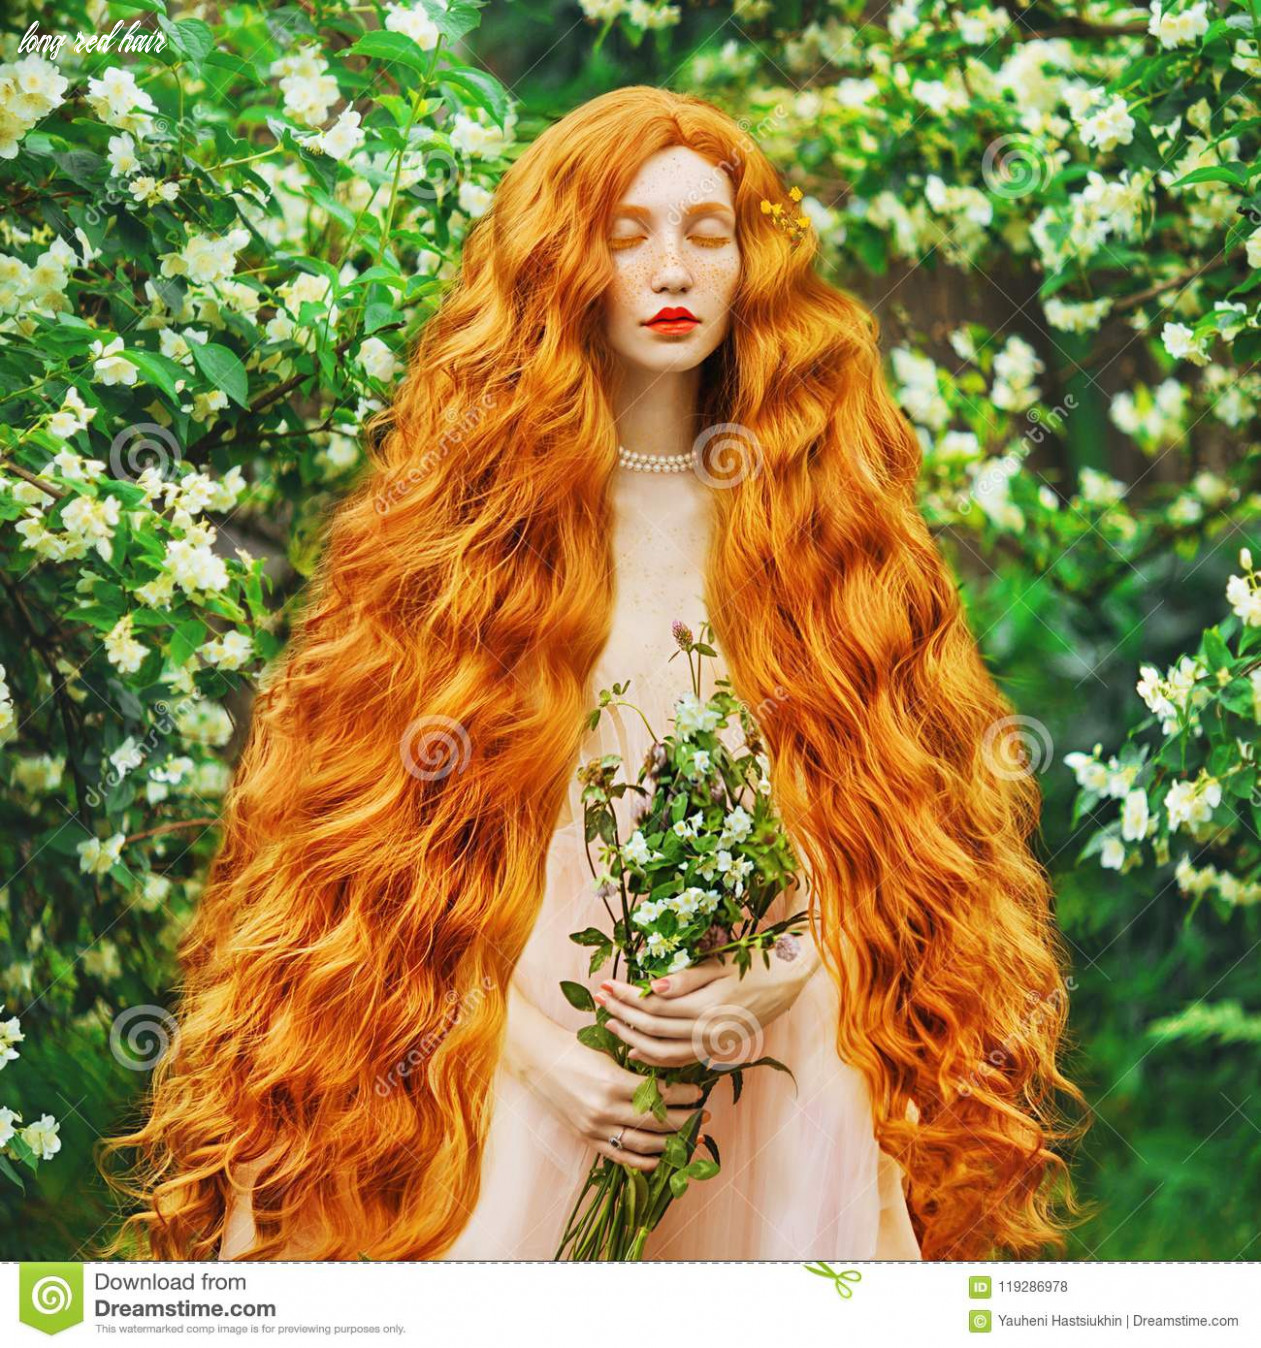 Young beautiful red haired girl with very long curly hair with